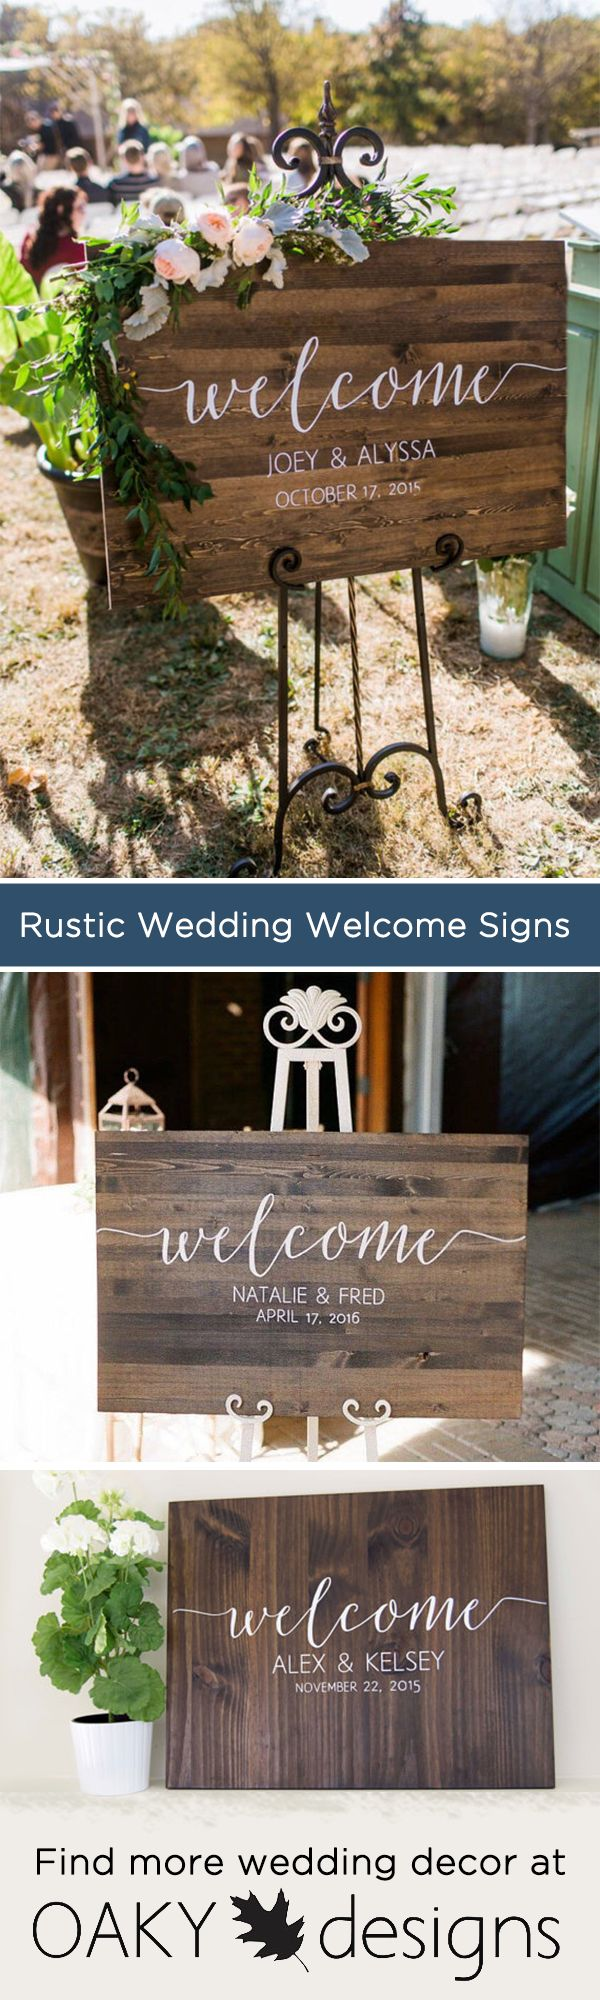 This classy wooden welcome sign will make a beautiful personalized touch to your wedding or event. This listing comes with 1 sign in the measurement and stain of your choice with the lettering in white. We invite you to come visit our store and find more beautiful options for your wedding decor!